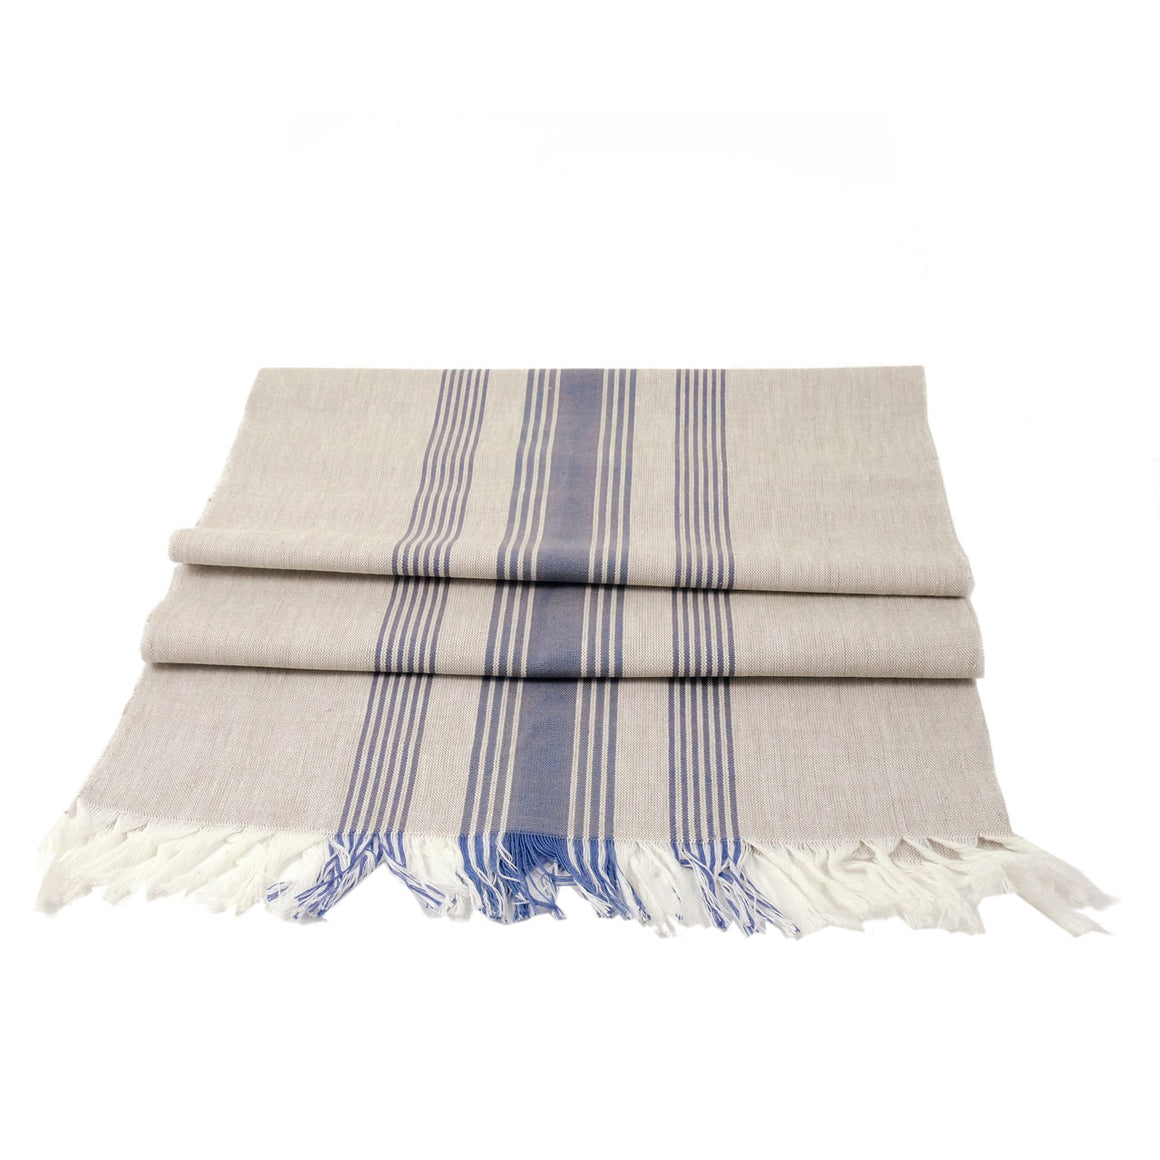 Wheat runner with blue stripes